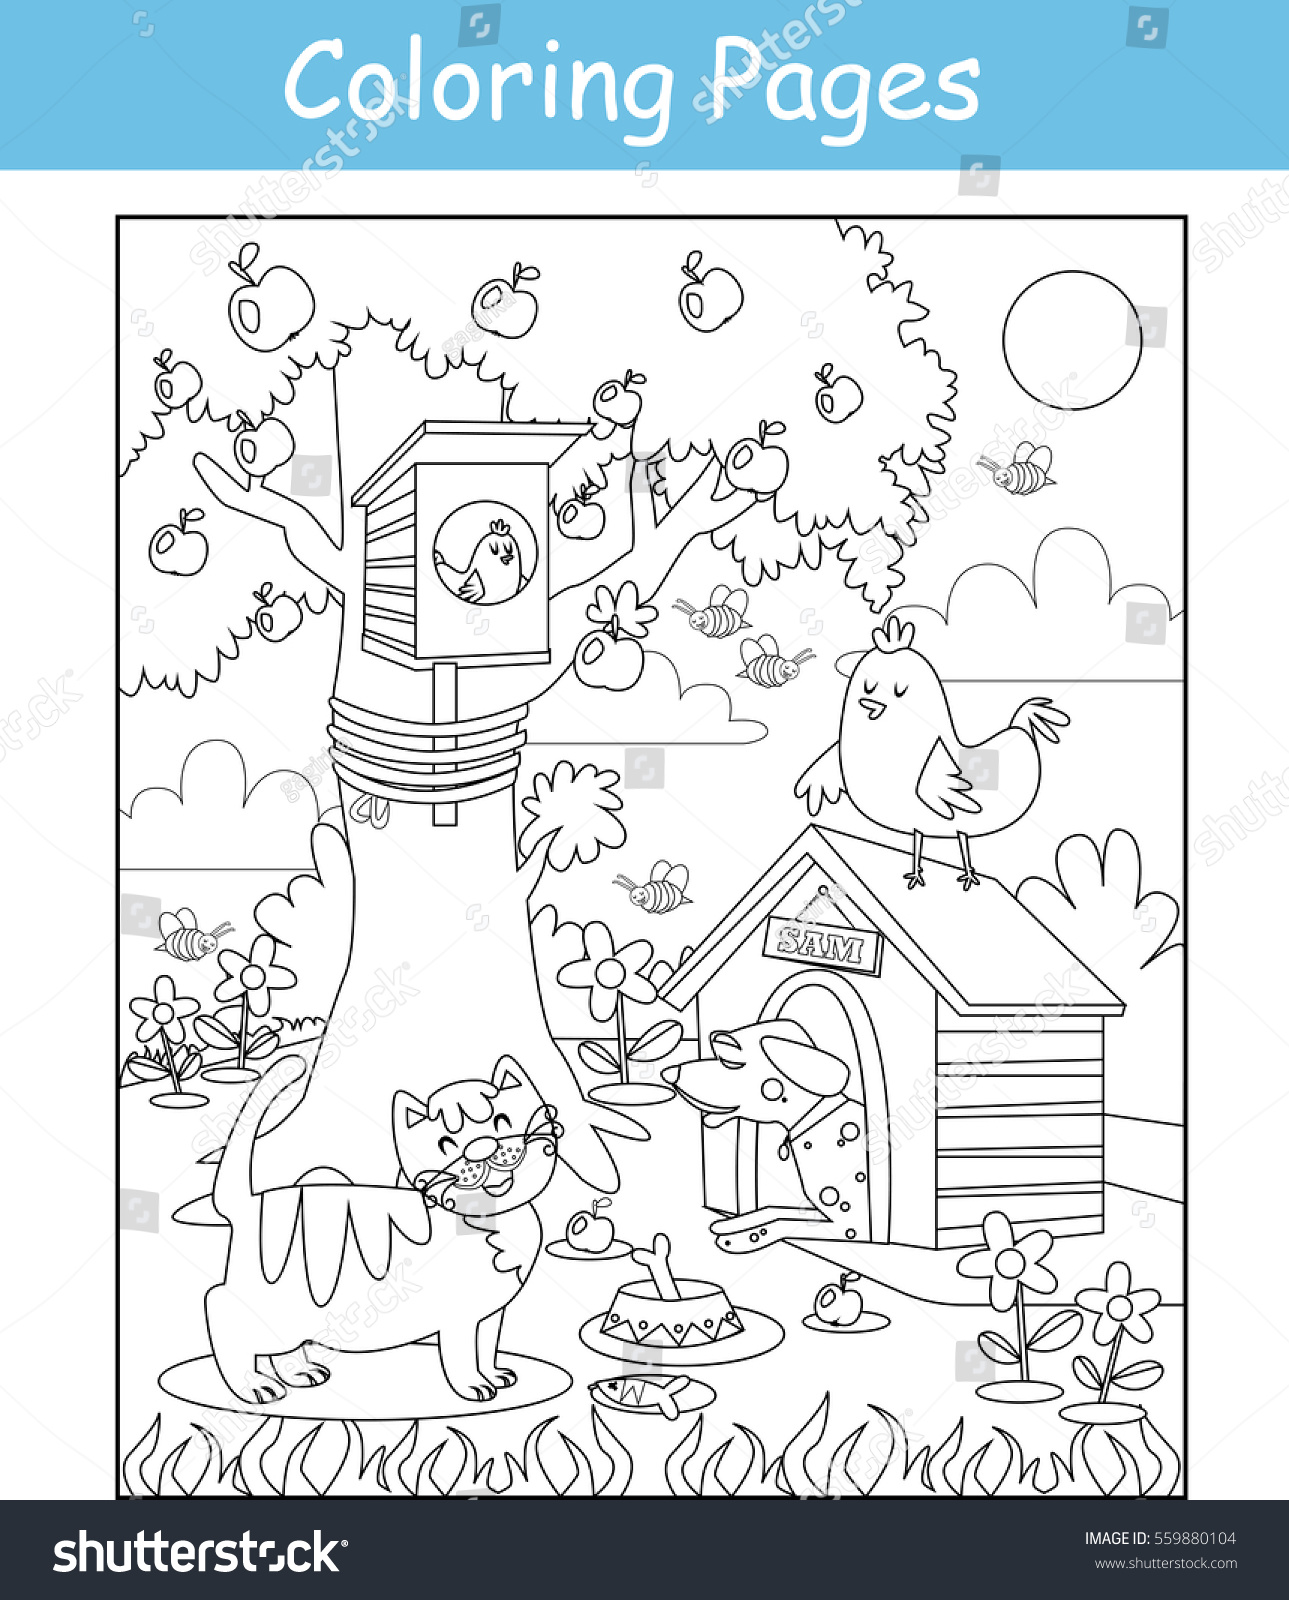 coloring pages cat dog birds stock vector 559880104 shutterstock